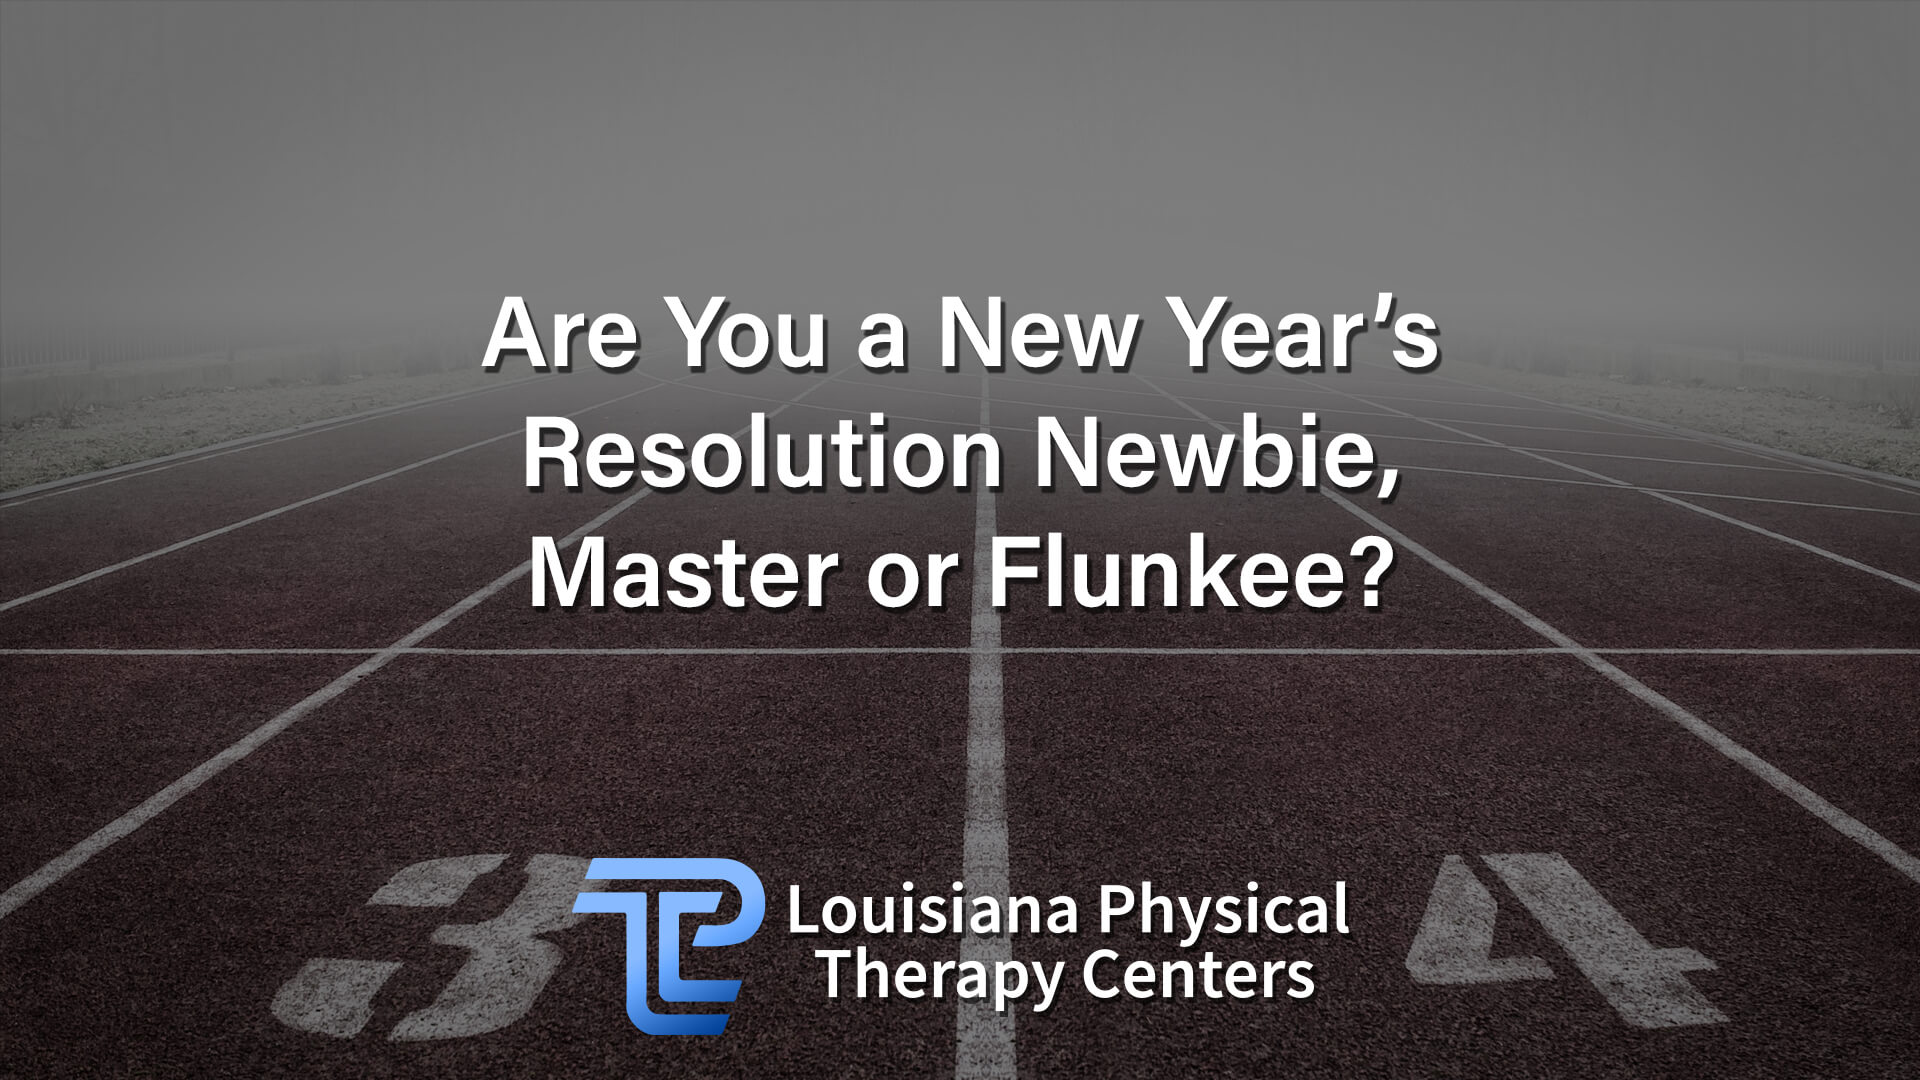 Are You a New Year's Resolution Newbie, Master or Flunkee